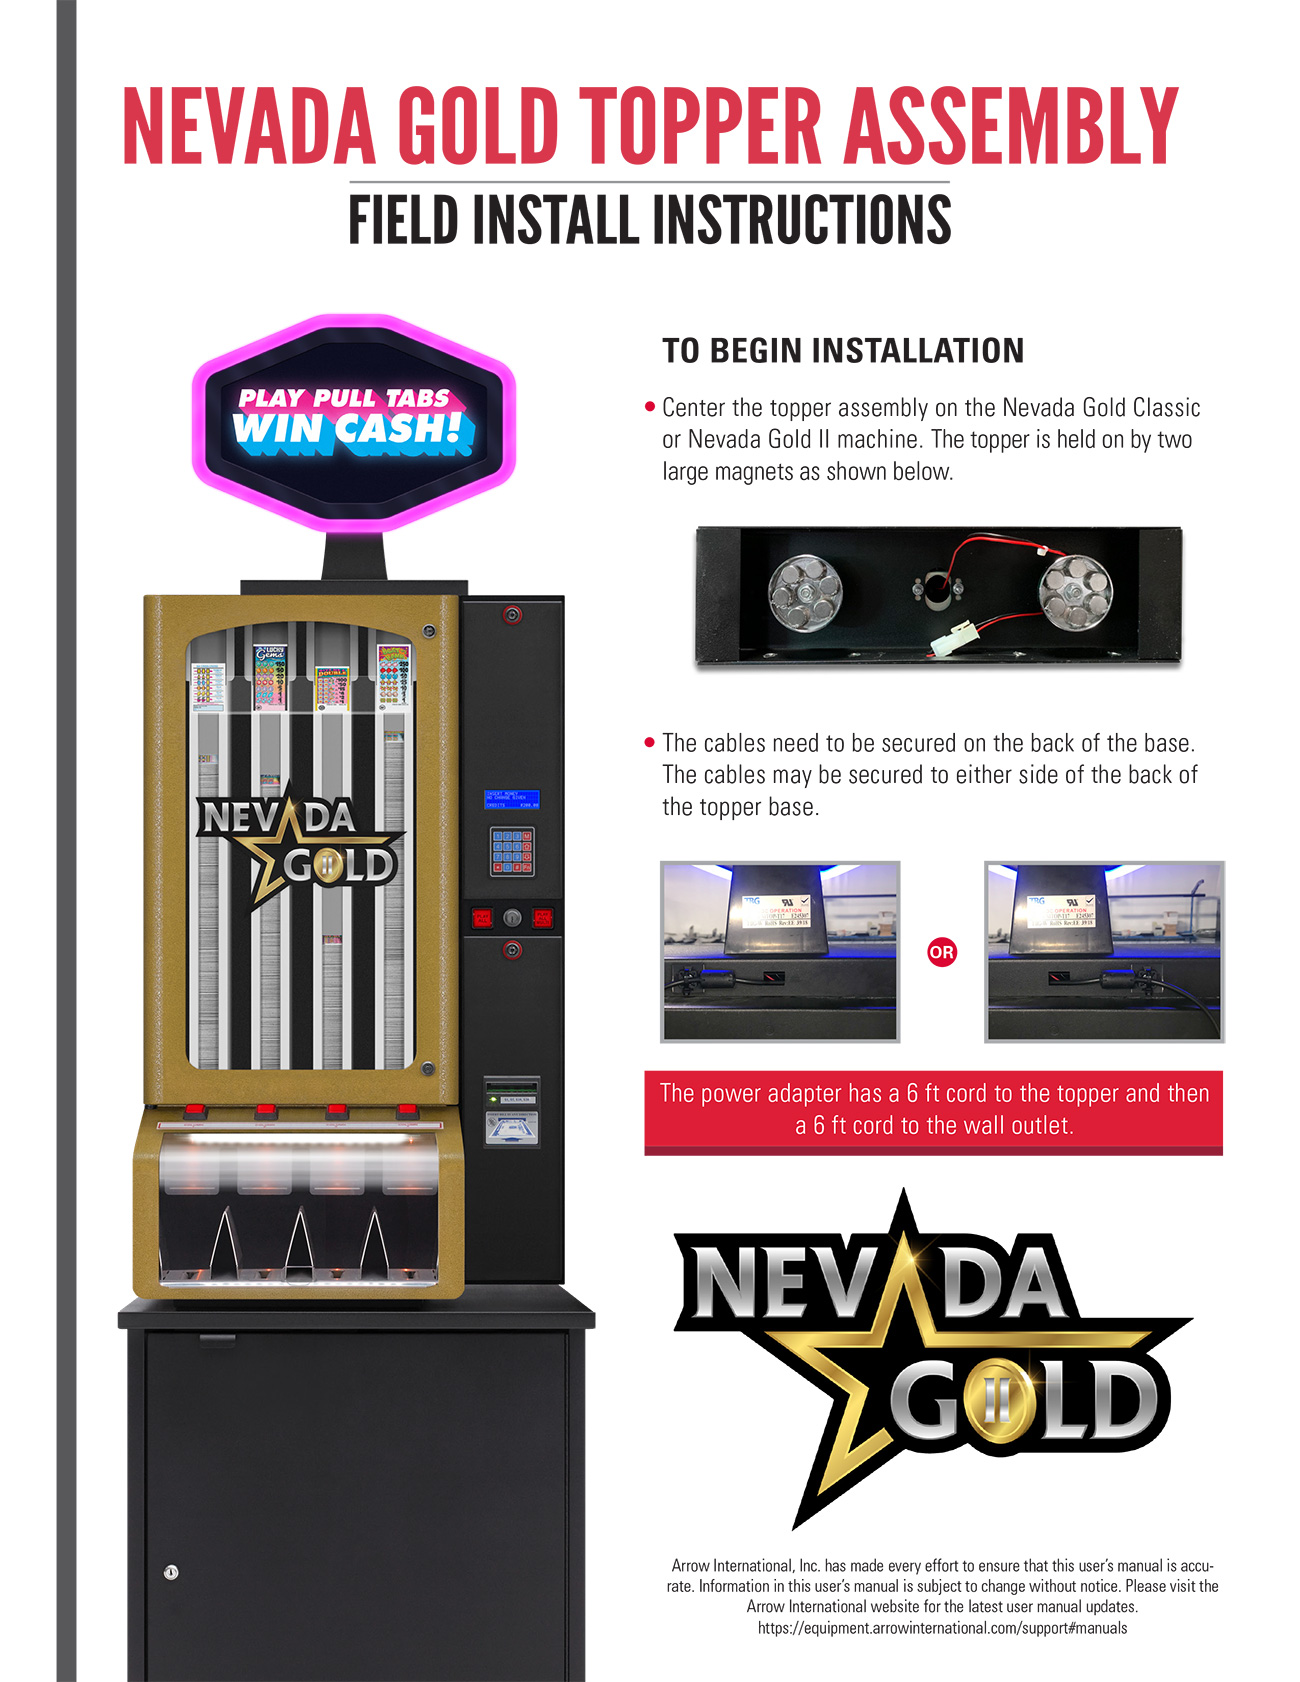 Nevada Gold Topper Assembly Promotional Materials/Equipment Flyers & Brochures